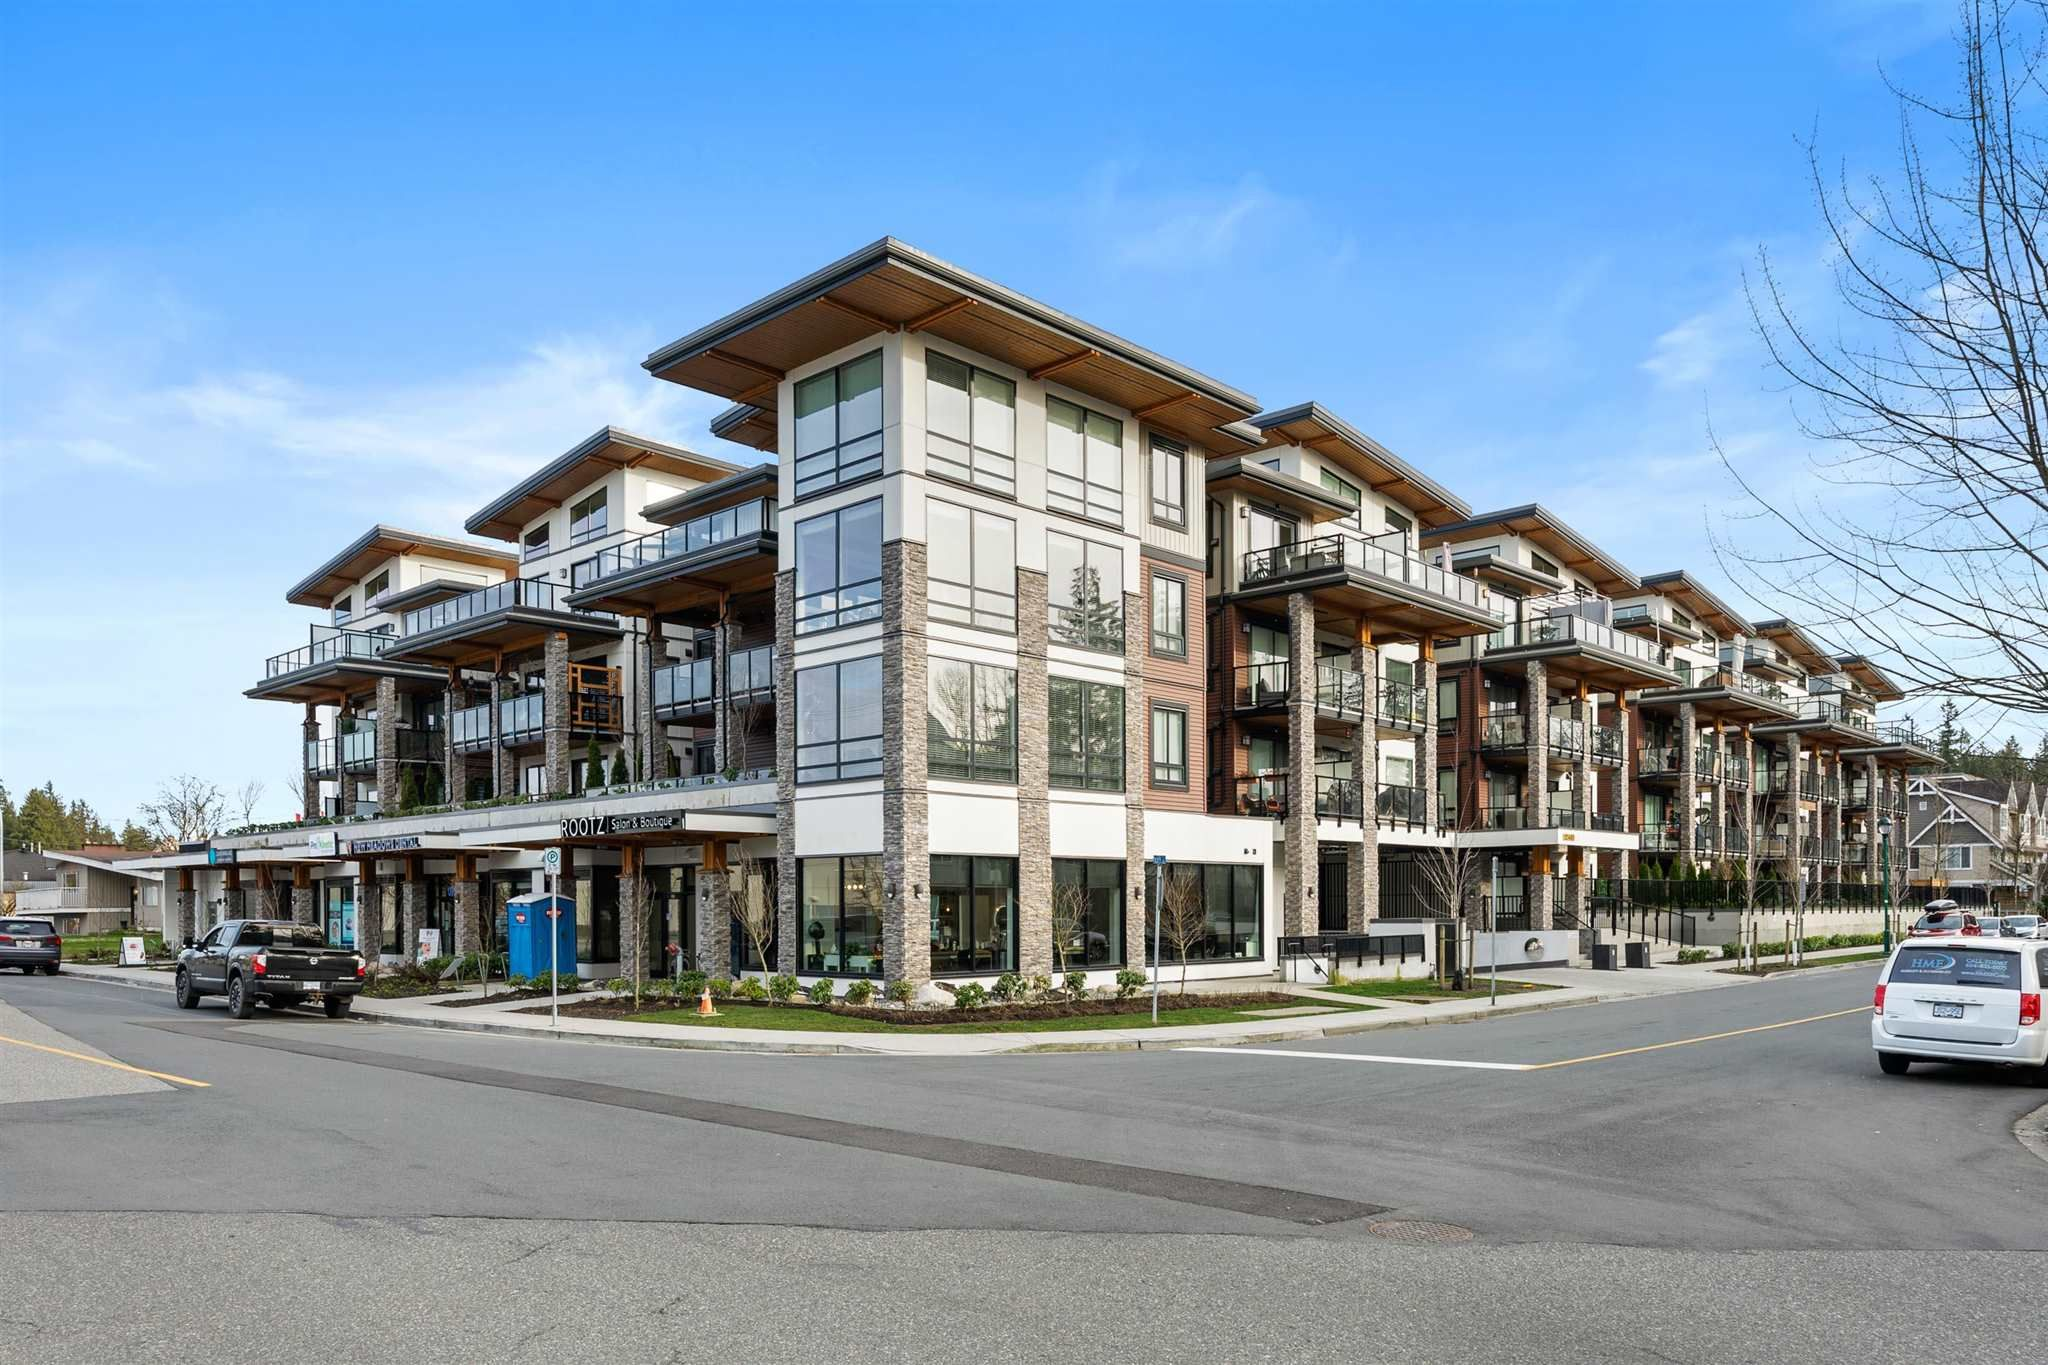 """Main Photo: 205 12460 191 Street in Pitt Meadows: Mid Meadows Condo for sale in """"Orion"""" : MLS®# R2603760"""